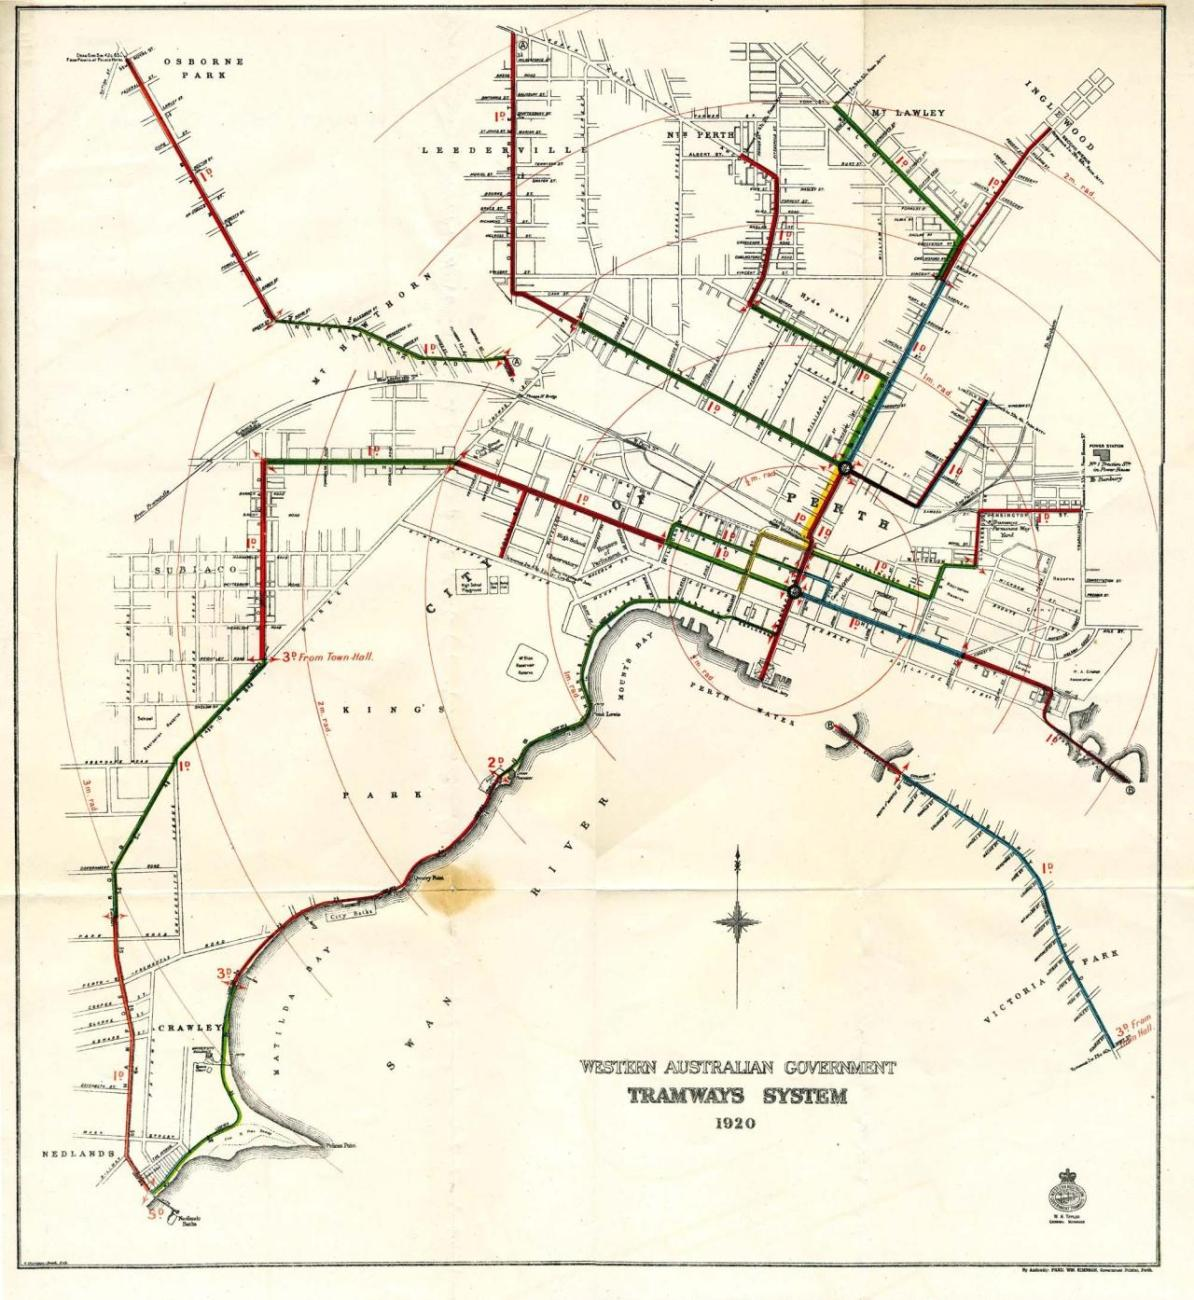 Perth In Australia Map.Transit Maps Historical Map Tramways System Of Perth Australia 1920